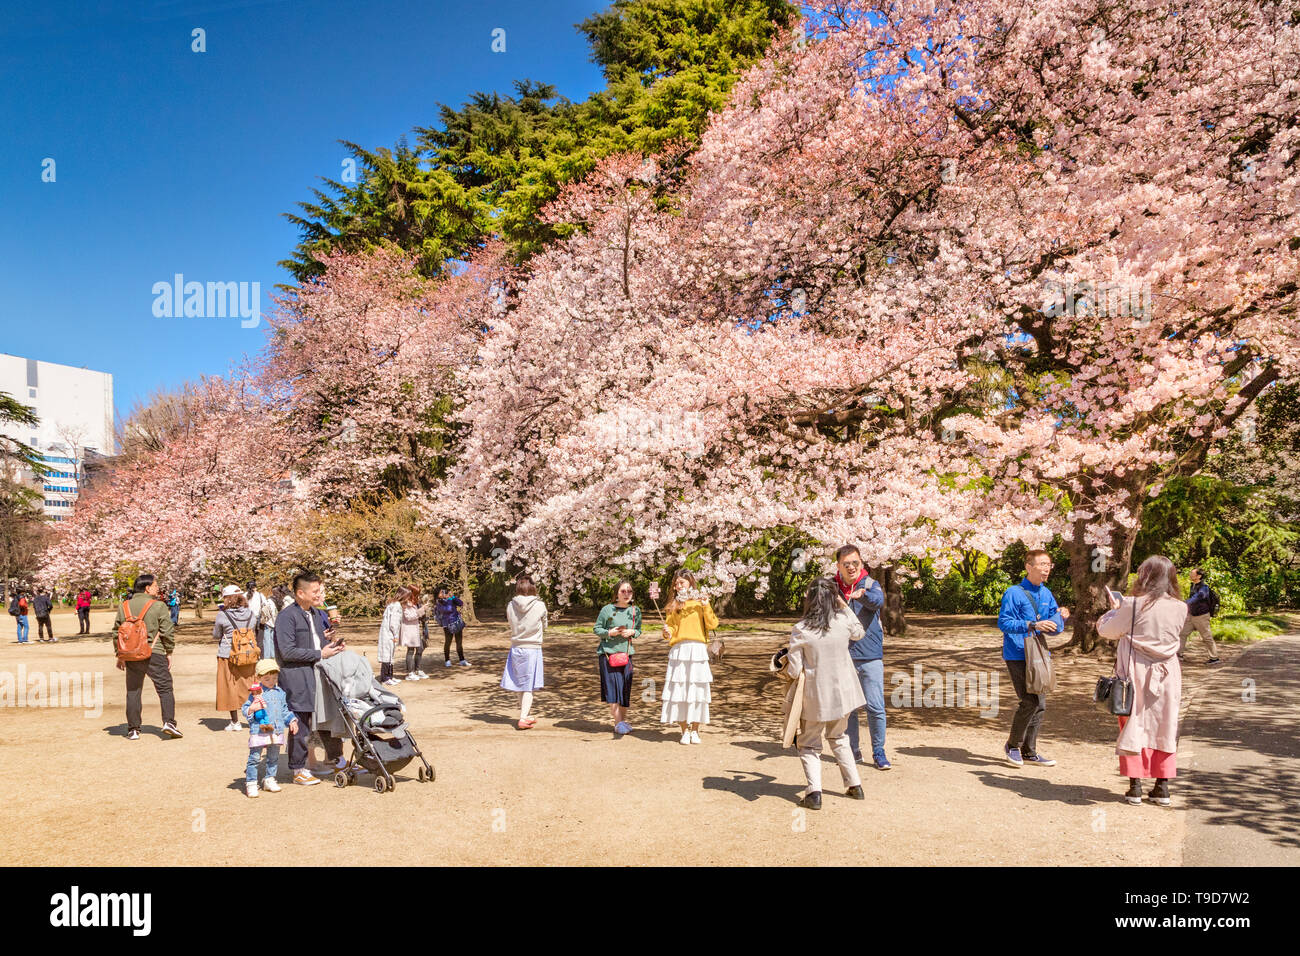 4 April 2019: Tokyo, Japan - Cherry Blossom in Shinjuku Gyoen Park in spring, with visitors taking photos and selfies. Stock Photo